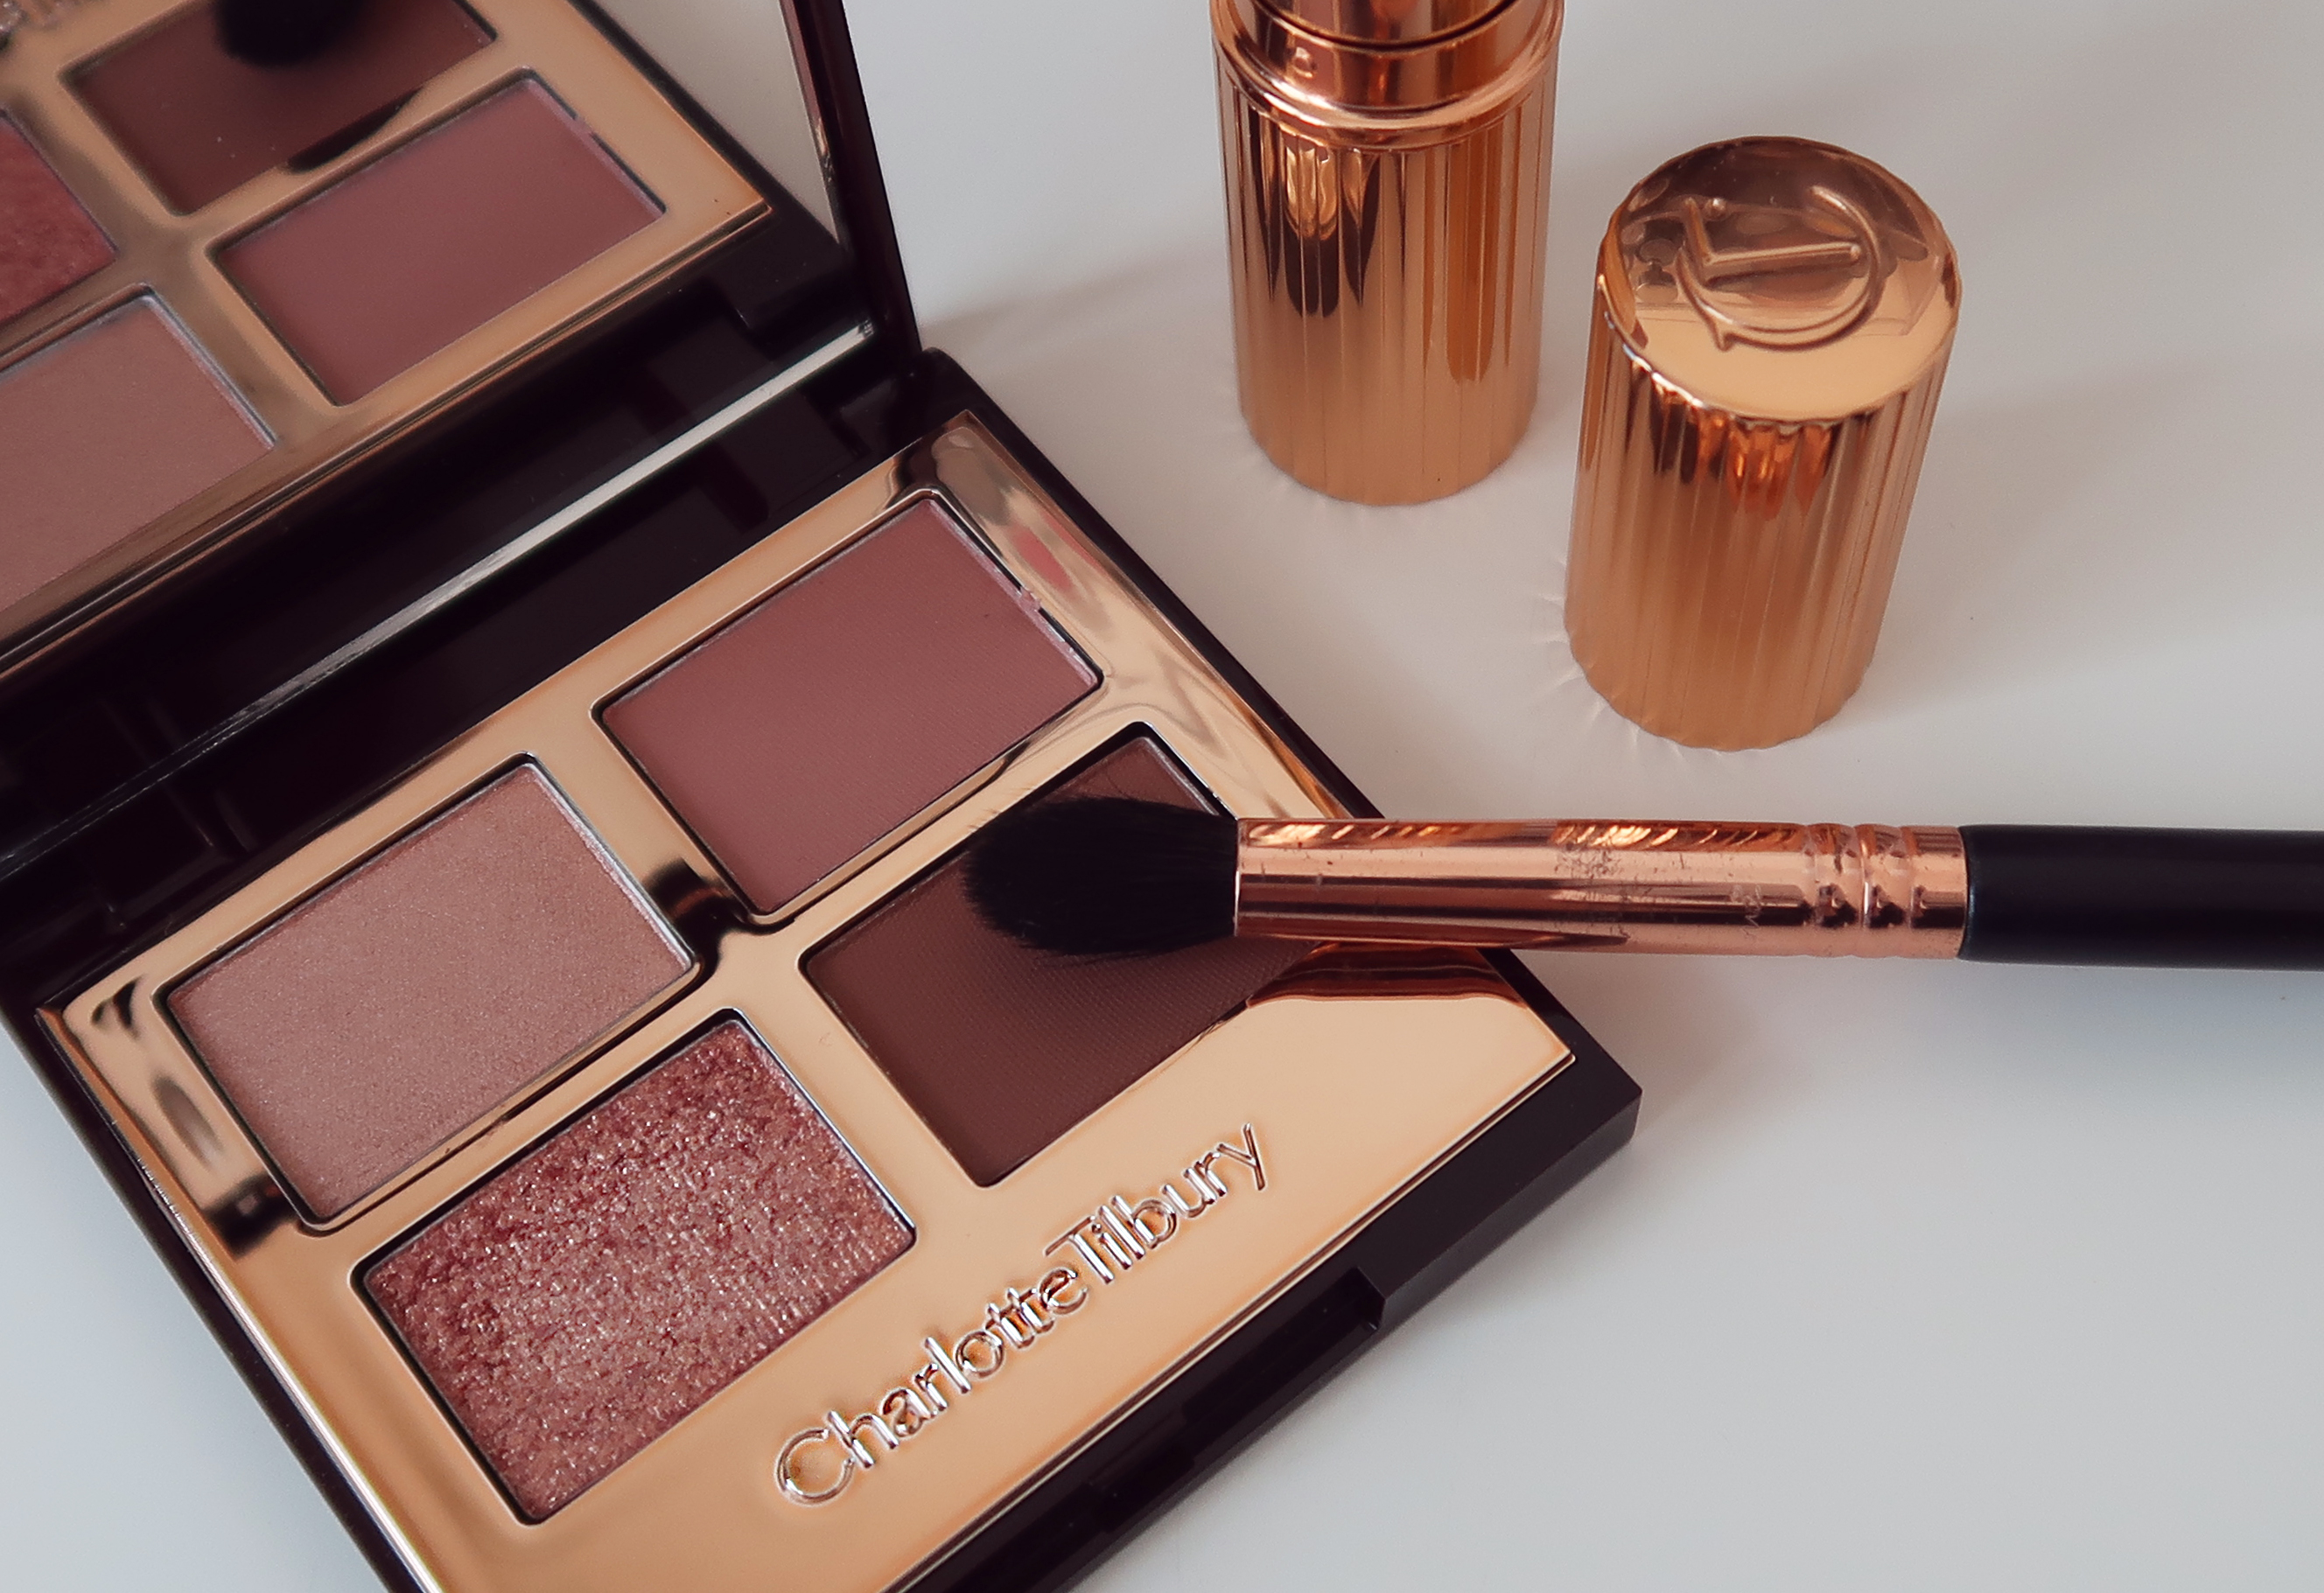 Charlotte Tilbury Pillow Talk Luxury Palette review - Rachael Divers Makeup  Artistry